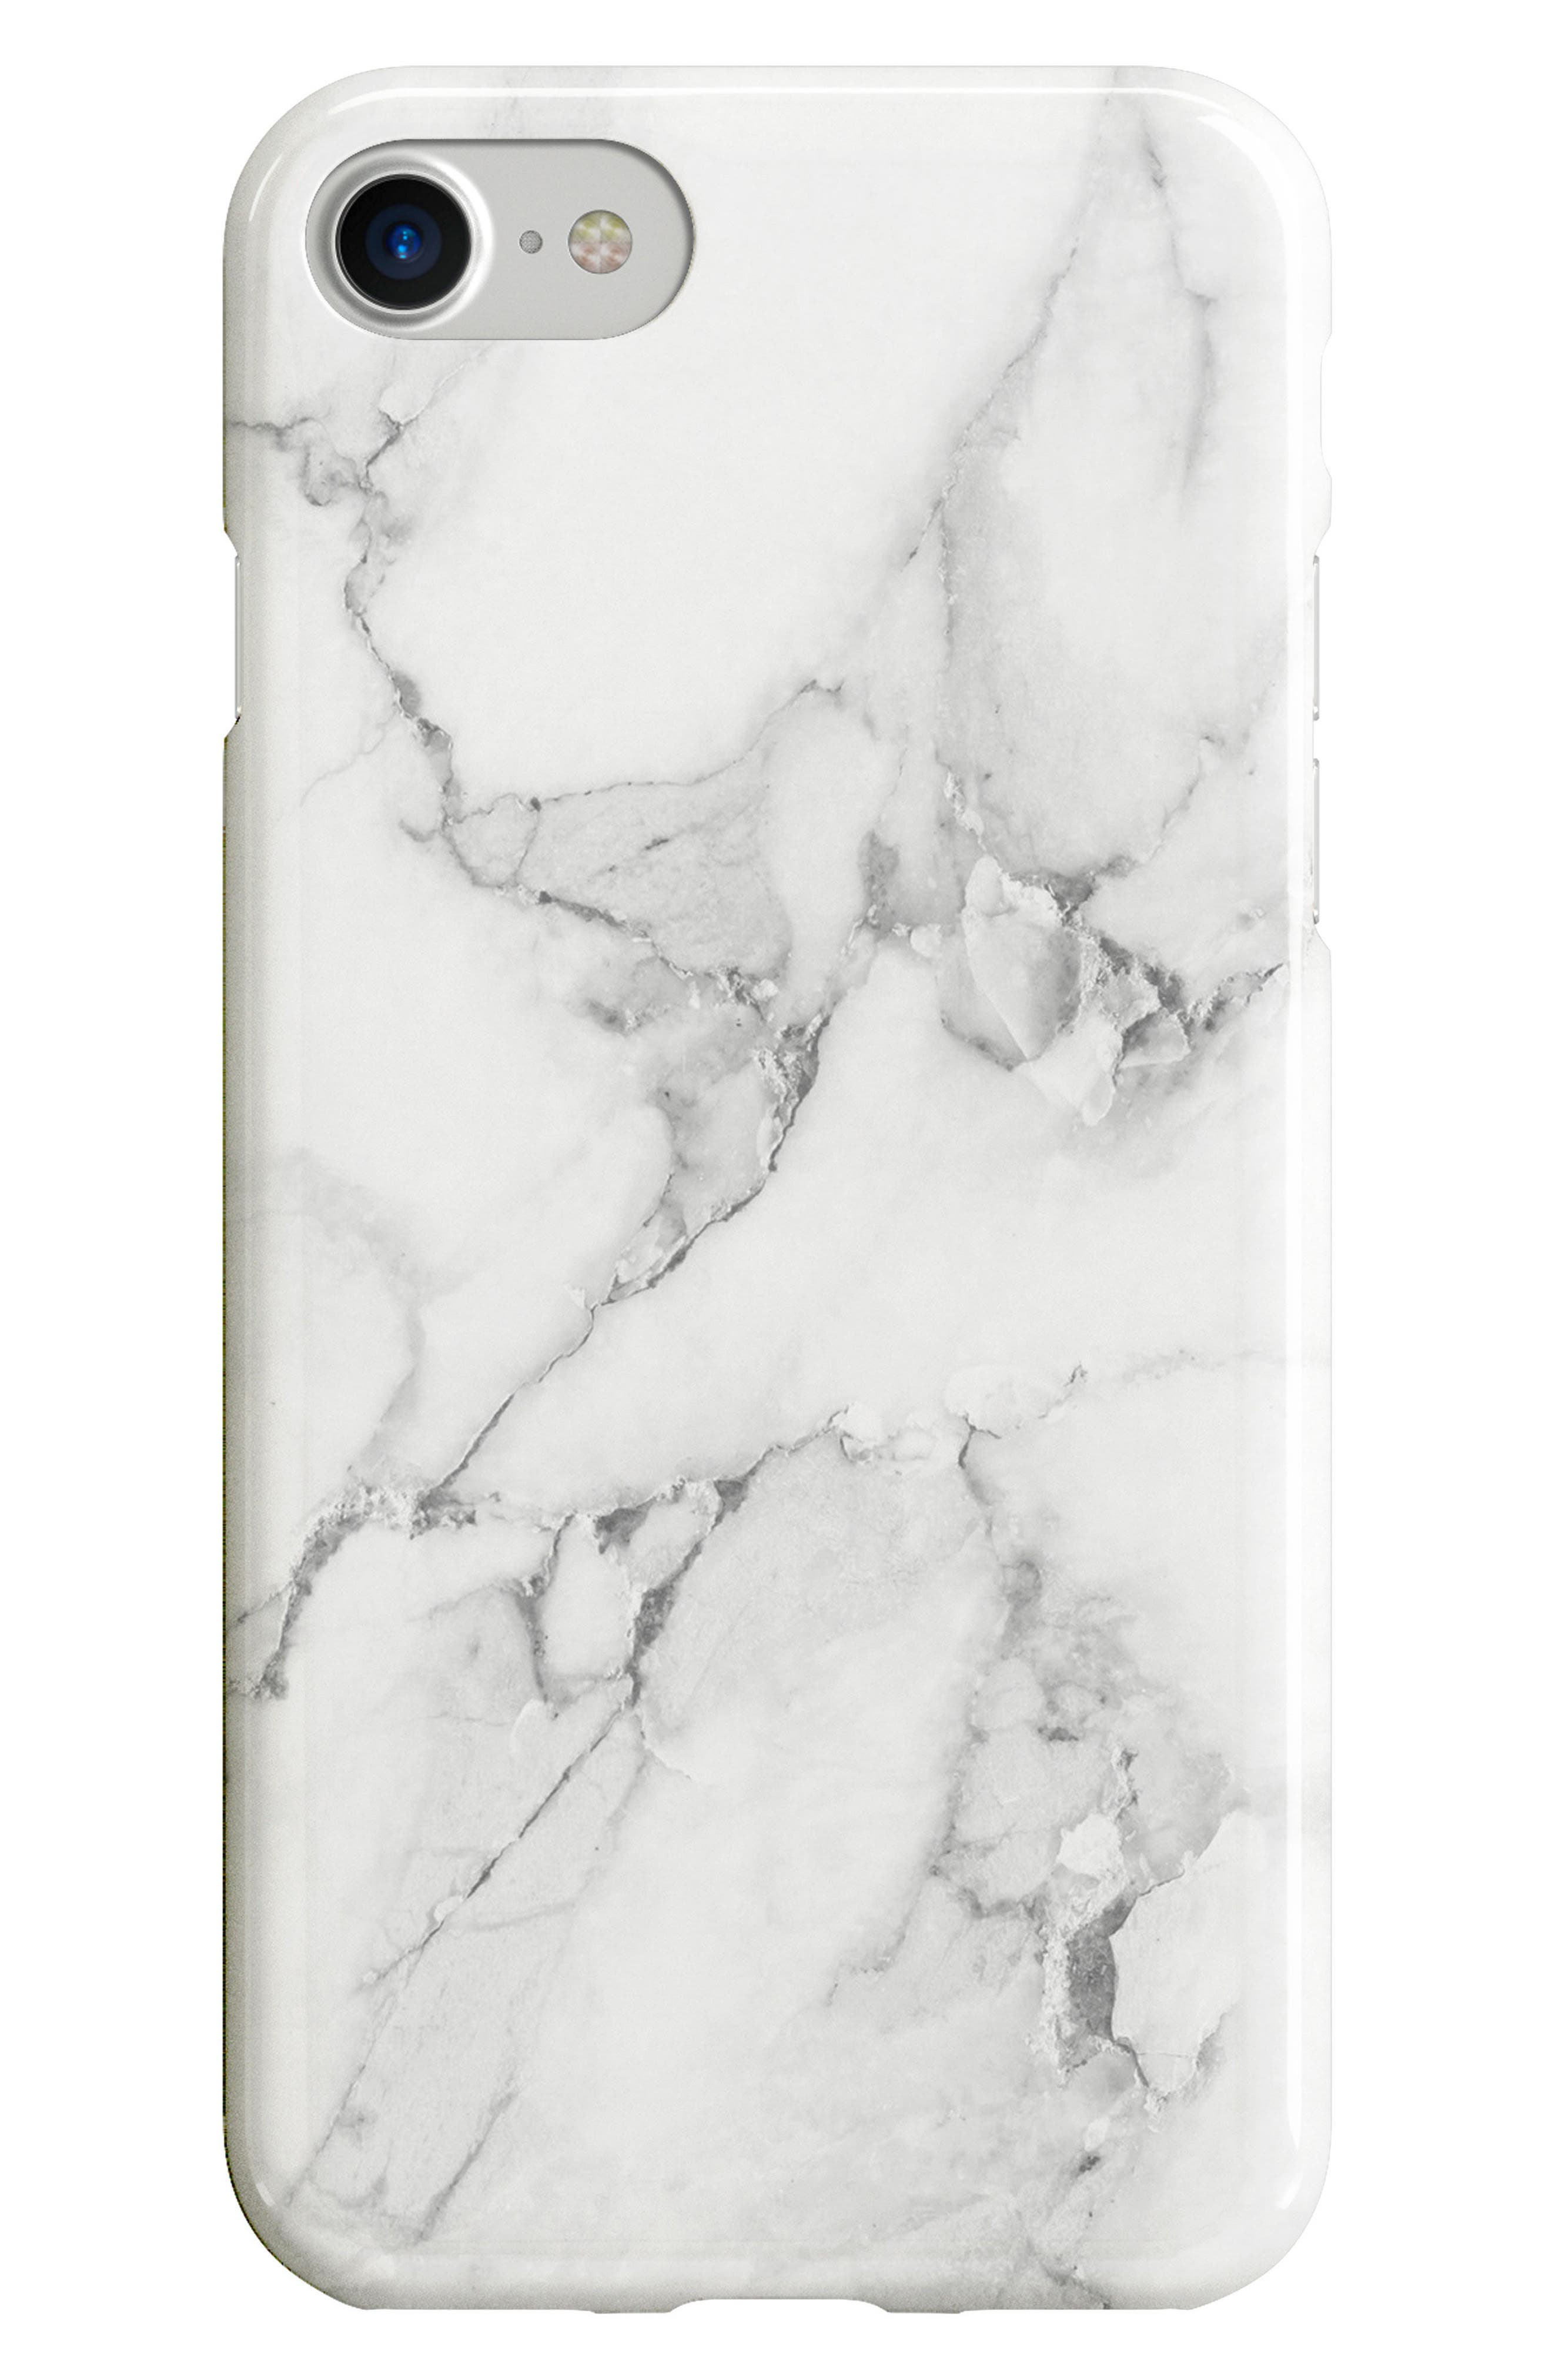 White Marble iPhone 6/6s/7/8 & 6/6s/7/8 Plus Case,                         Main,                         color, MARBLE